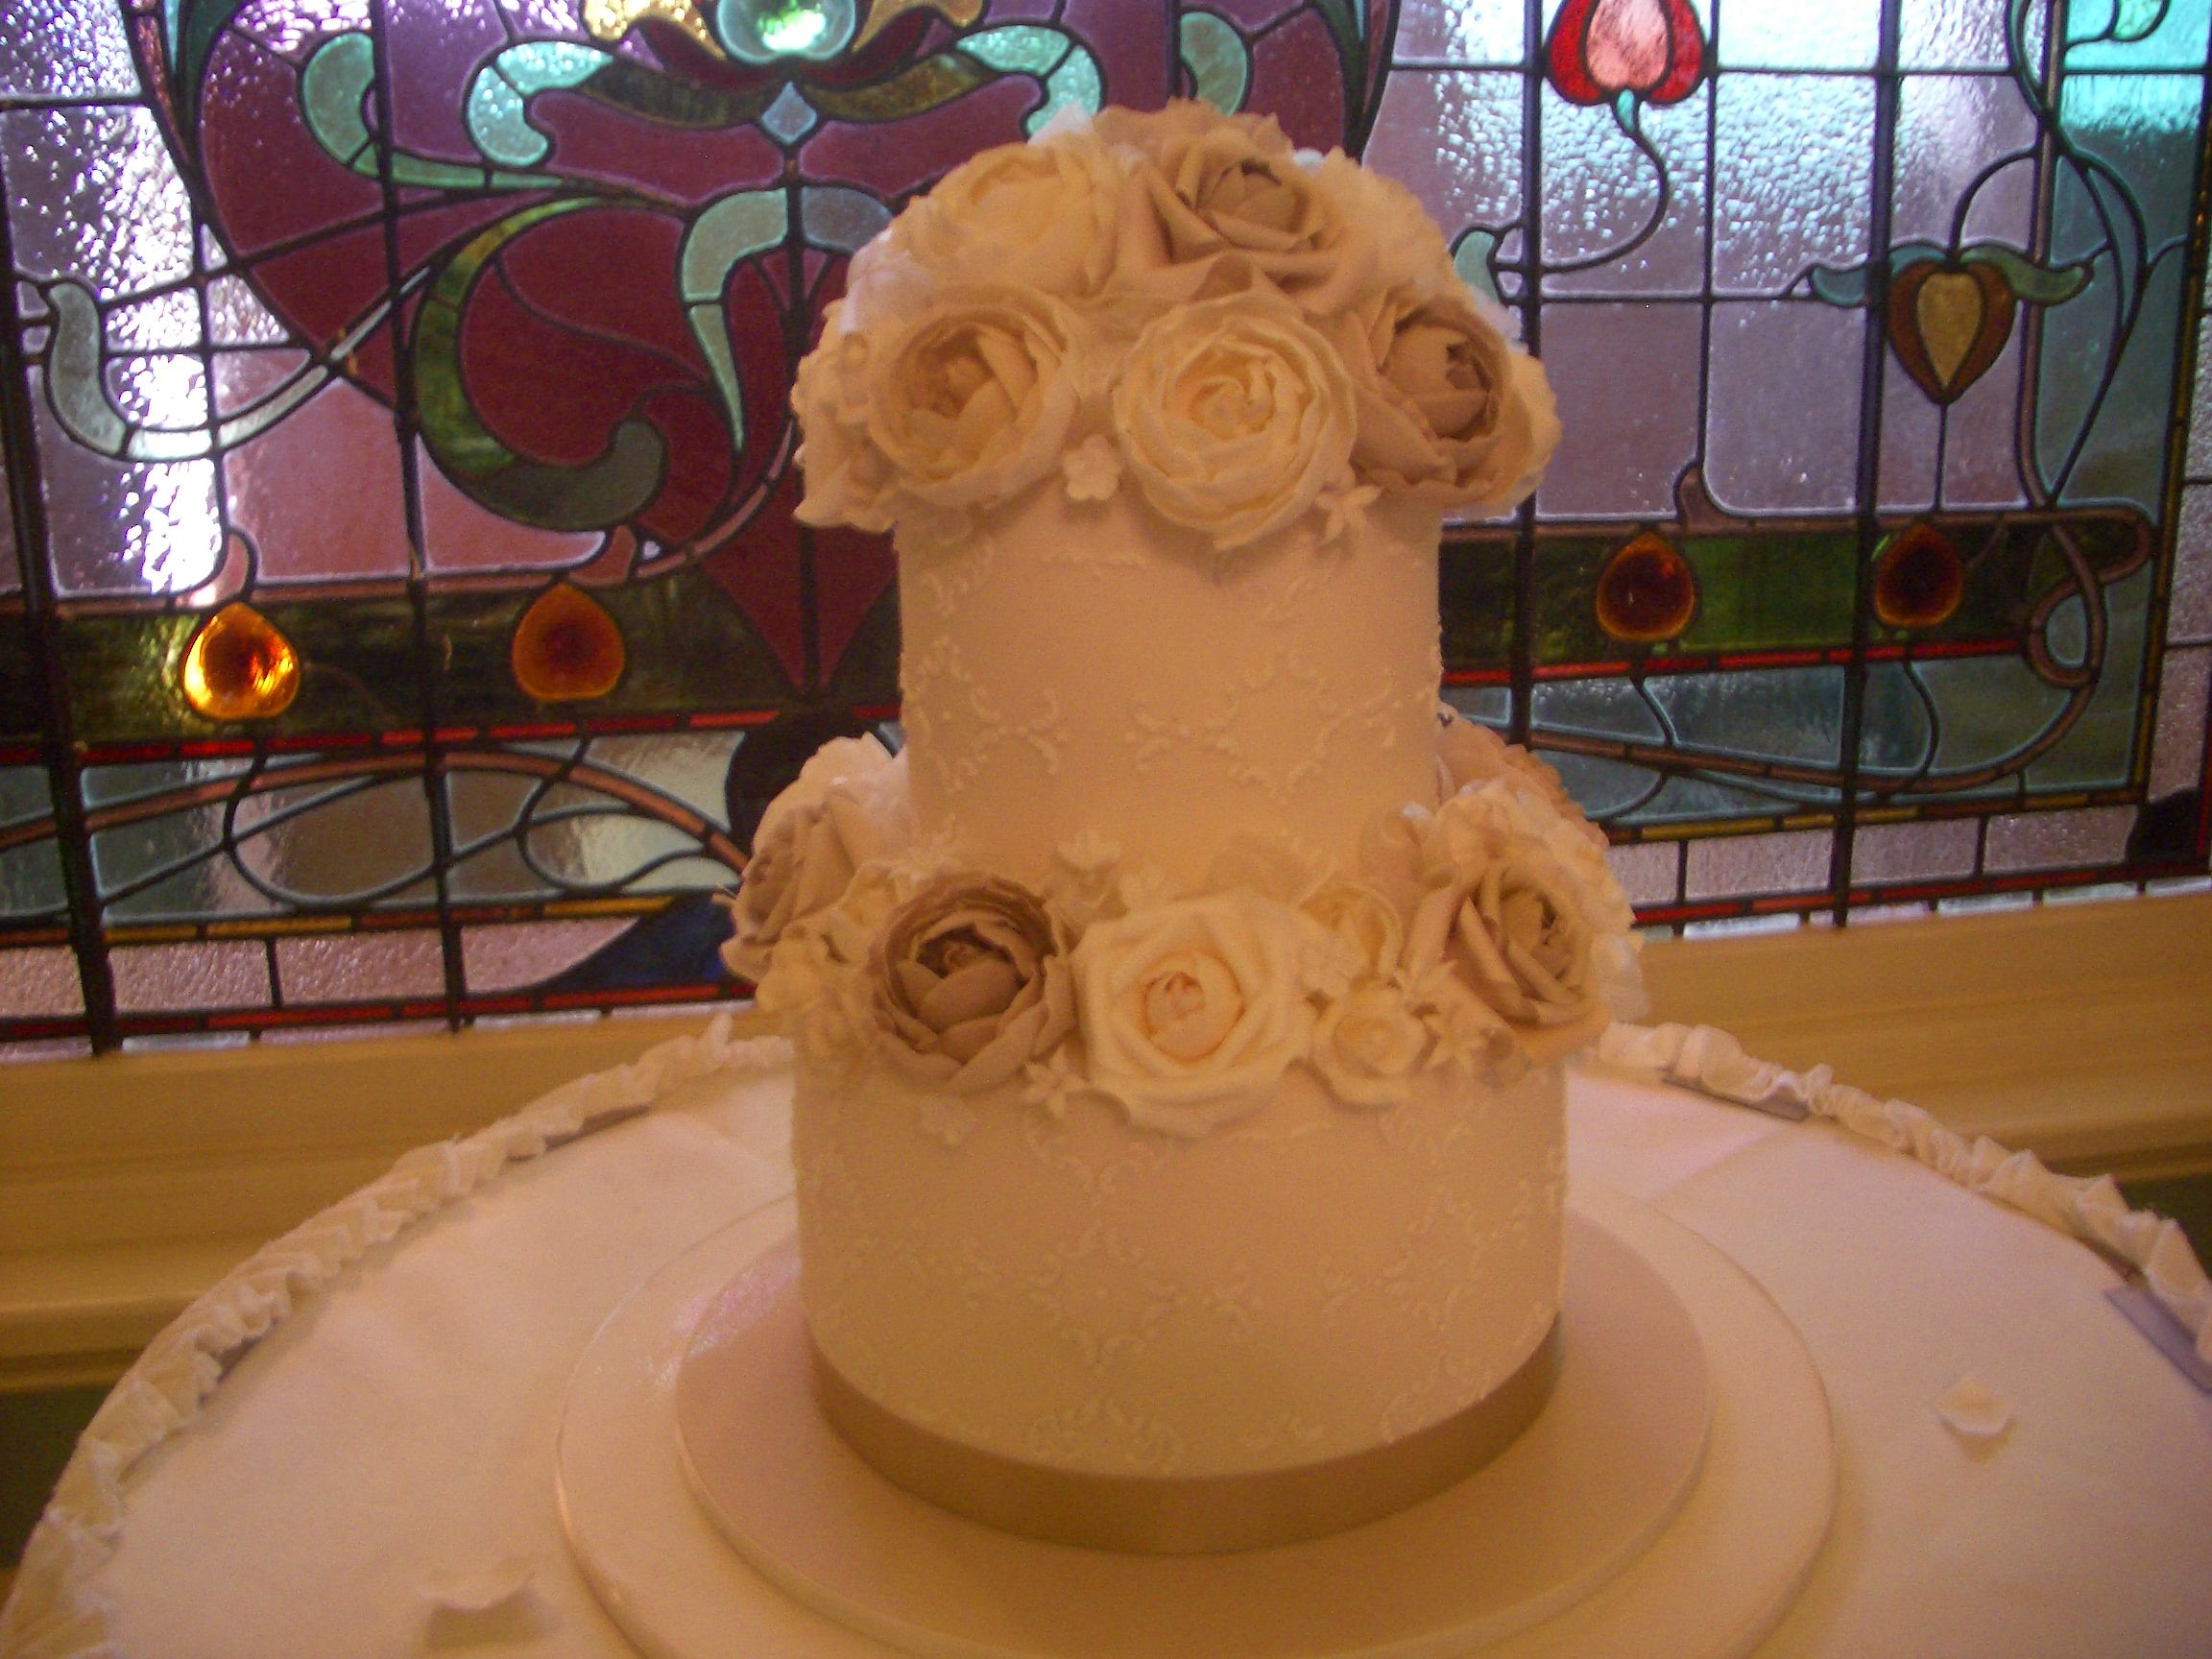 Melbourne Wedding Cakes: This cake is so heavenly, they allowed it in the church. The colours of the cake even look like that of a halo!